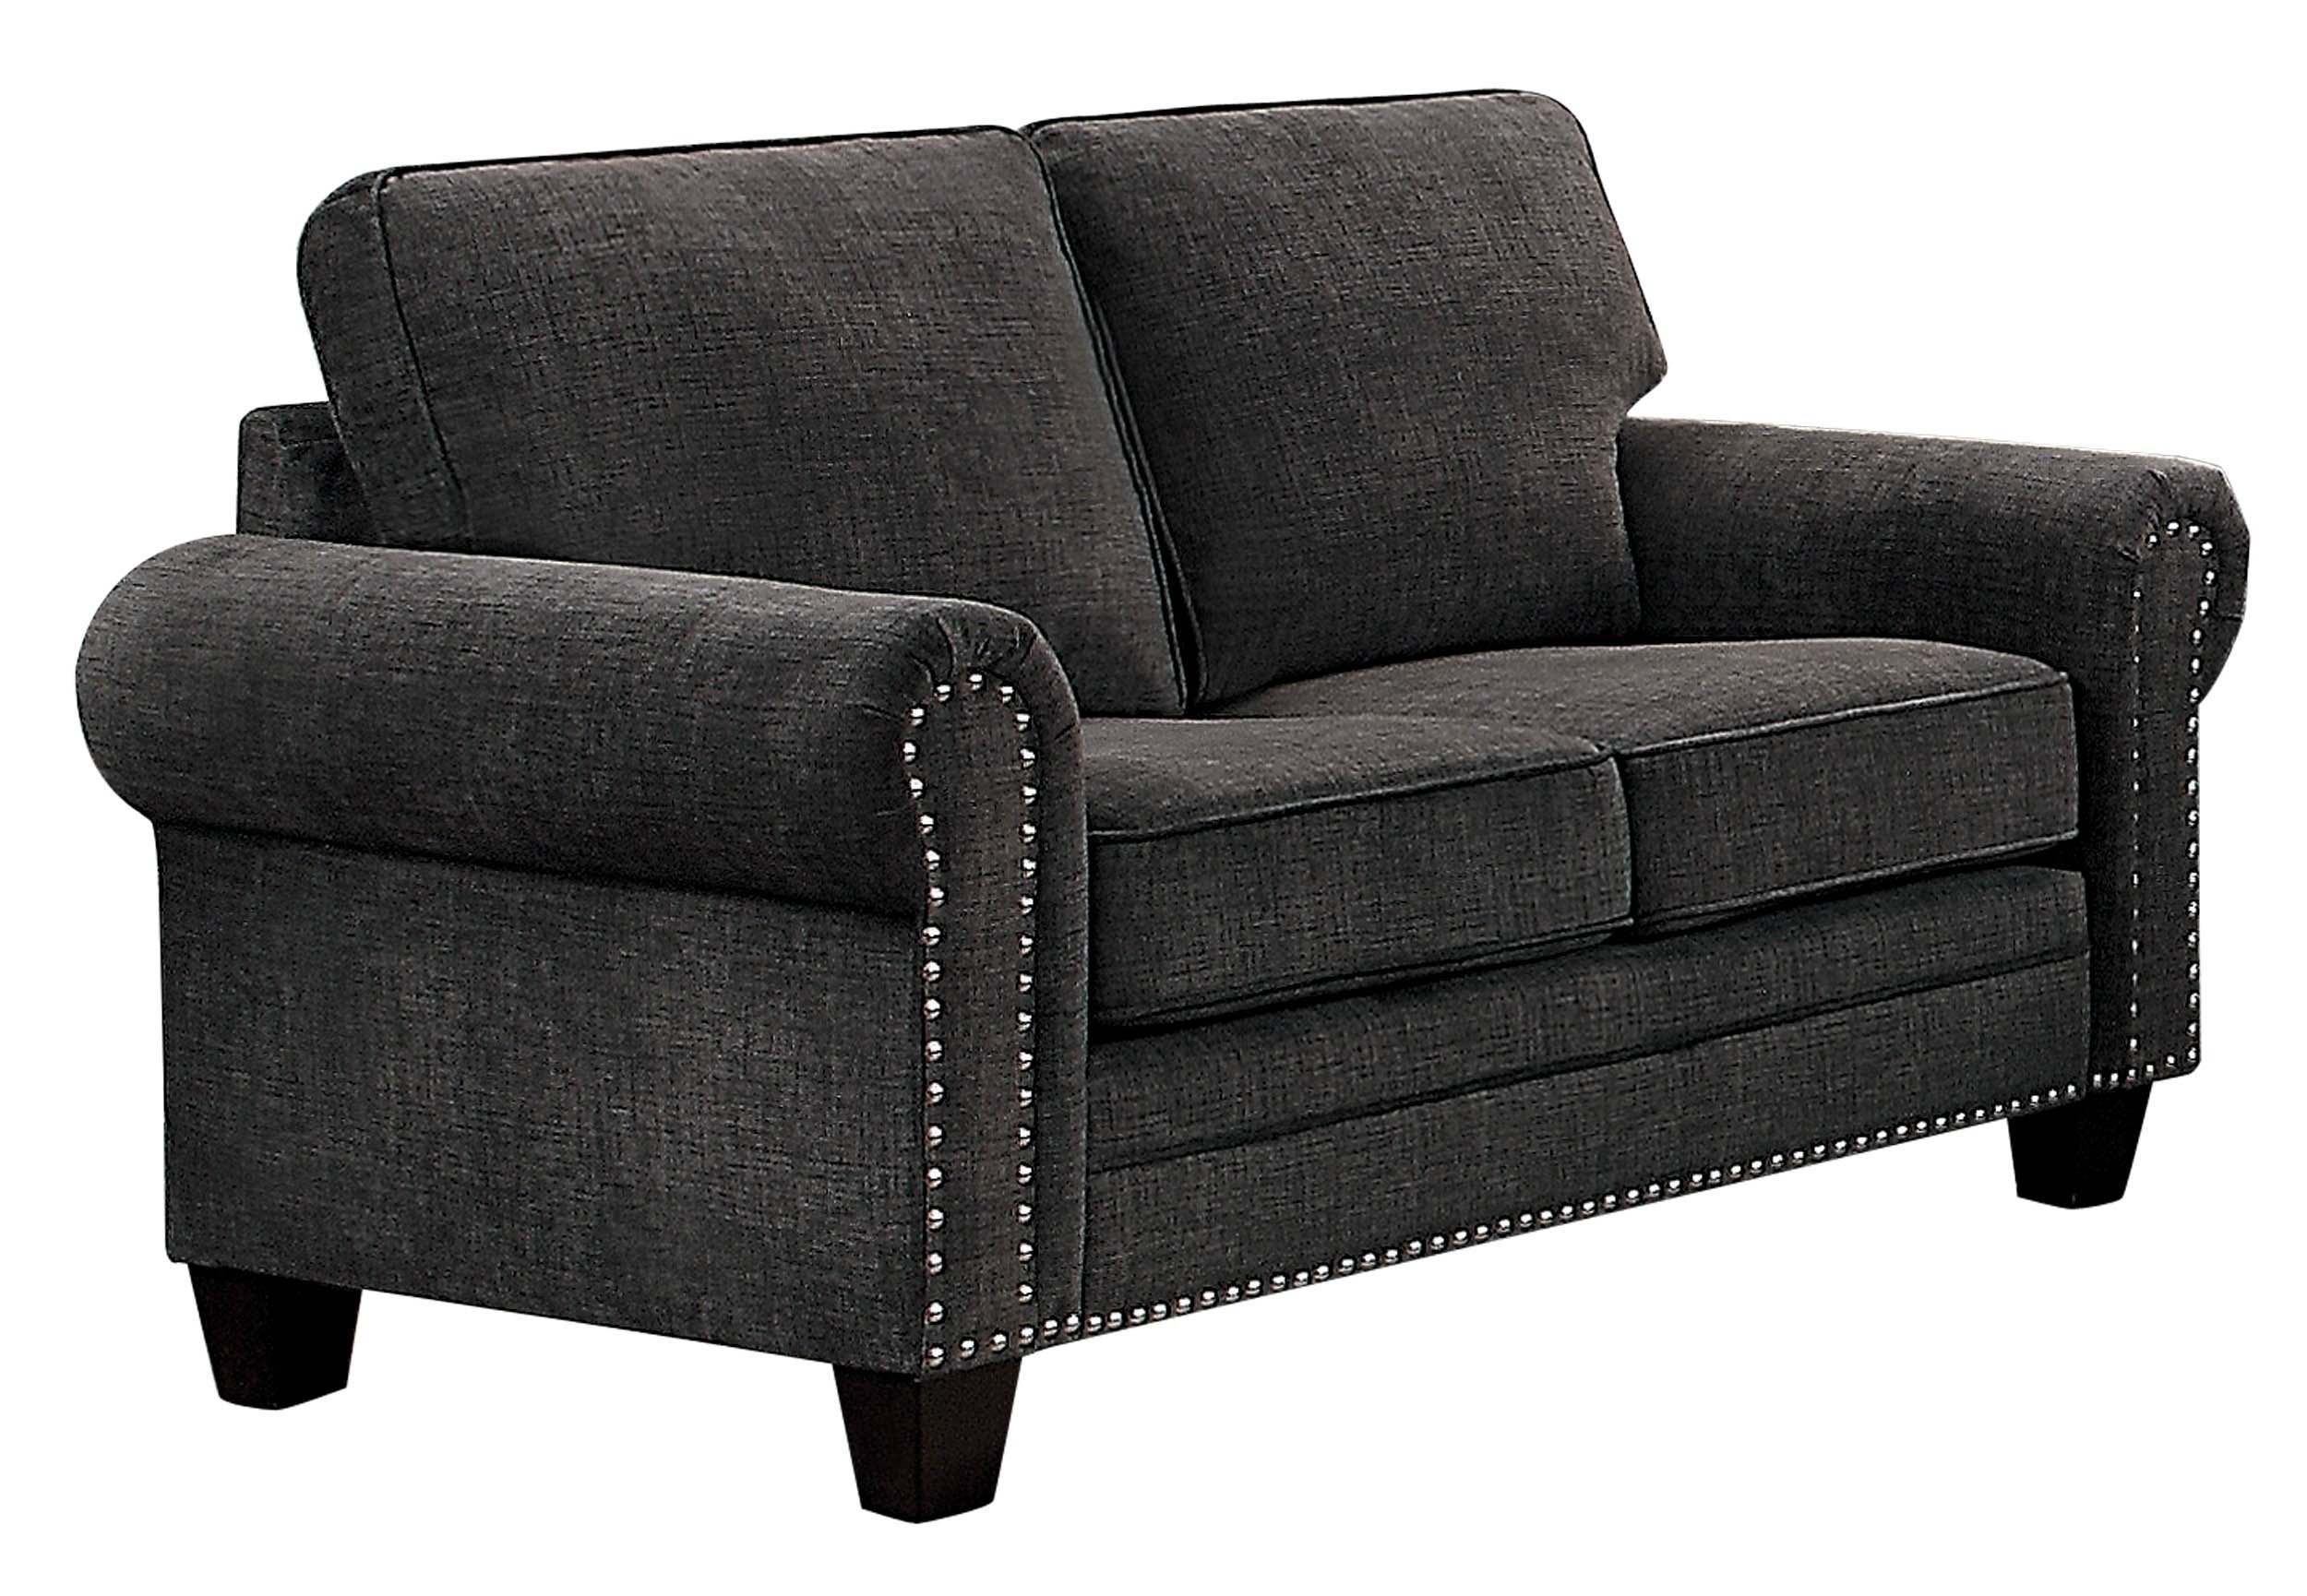 Homelegance Cornelia Rolled Arm Loveseat with Nail Head Accent Polyester Fabric Cover, Dark Grey